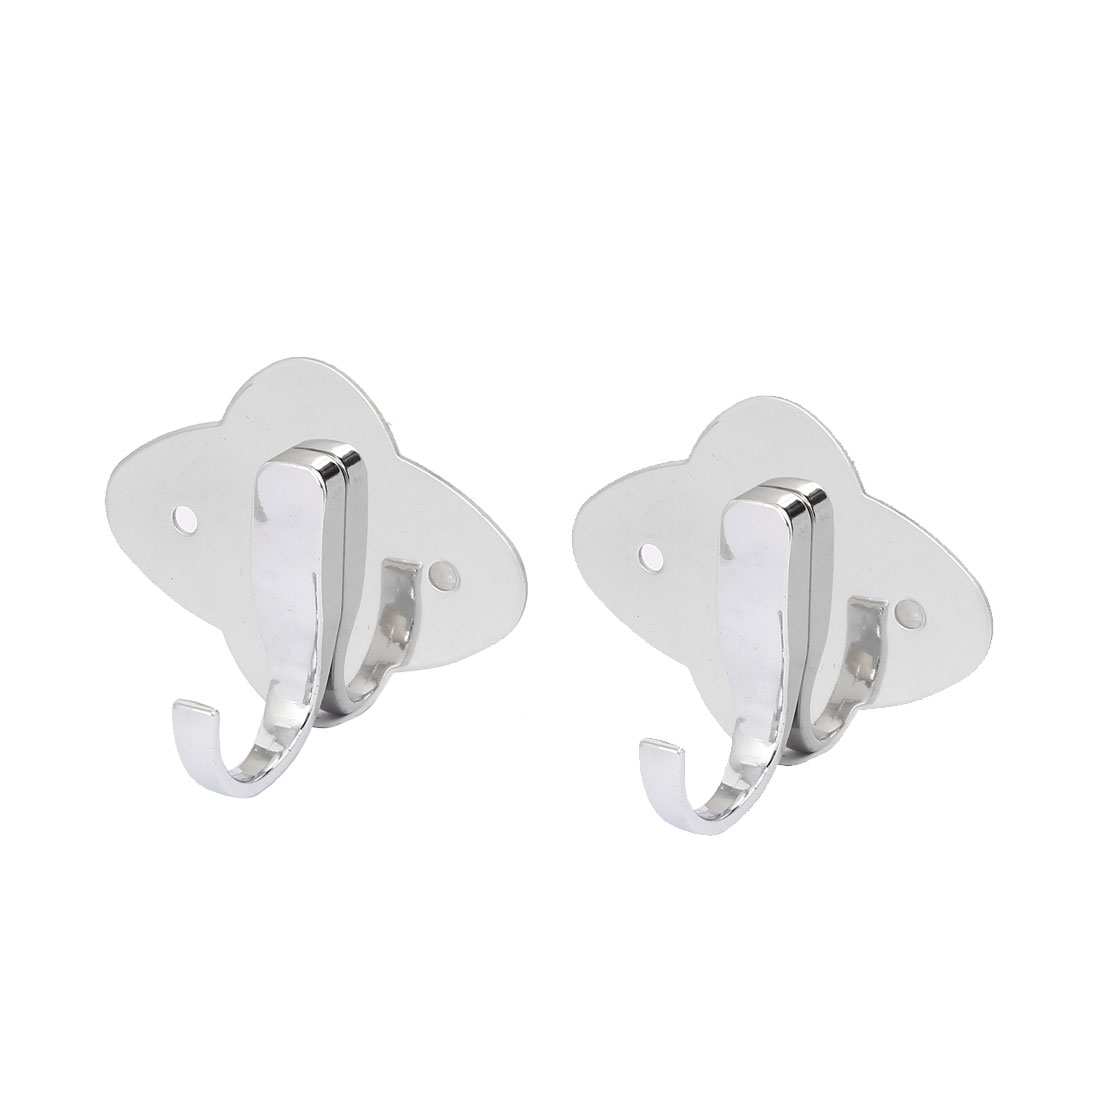 Bathroom Clothes Hat Coat Single Hanger Stainless Steel Wall Mount Hanging Hook 2pcs